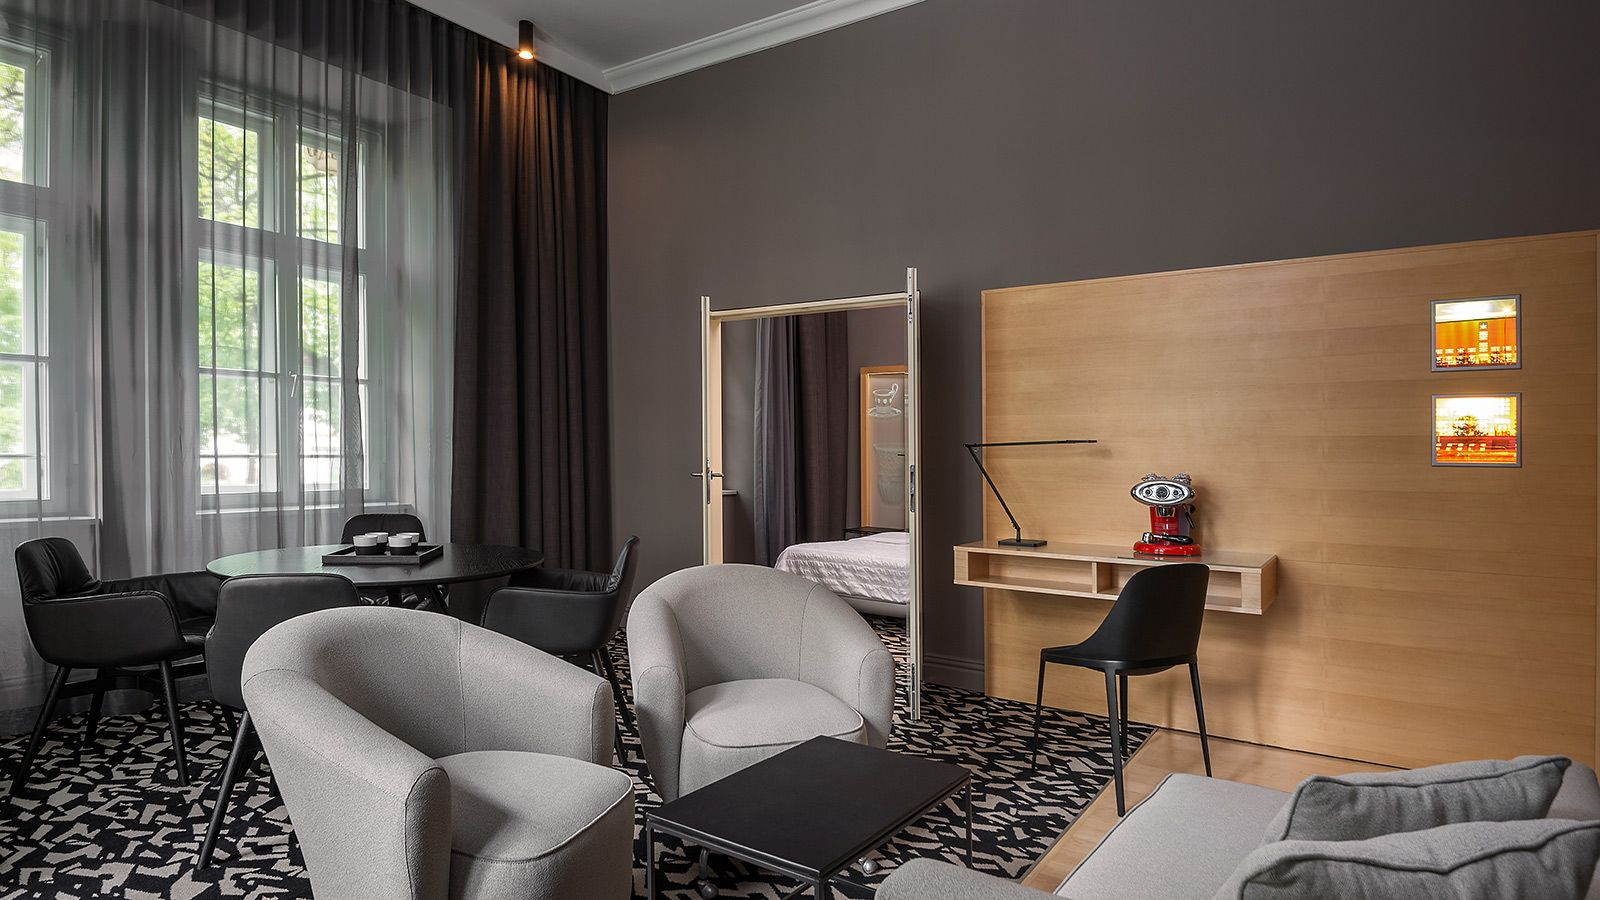 Luxus Hotel Wien: Le Méridien - Executive Suite